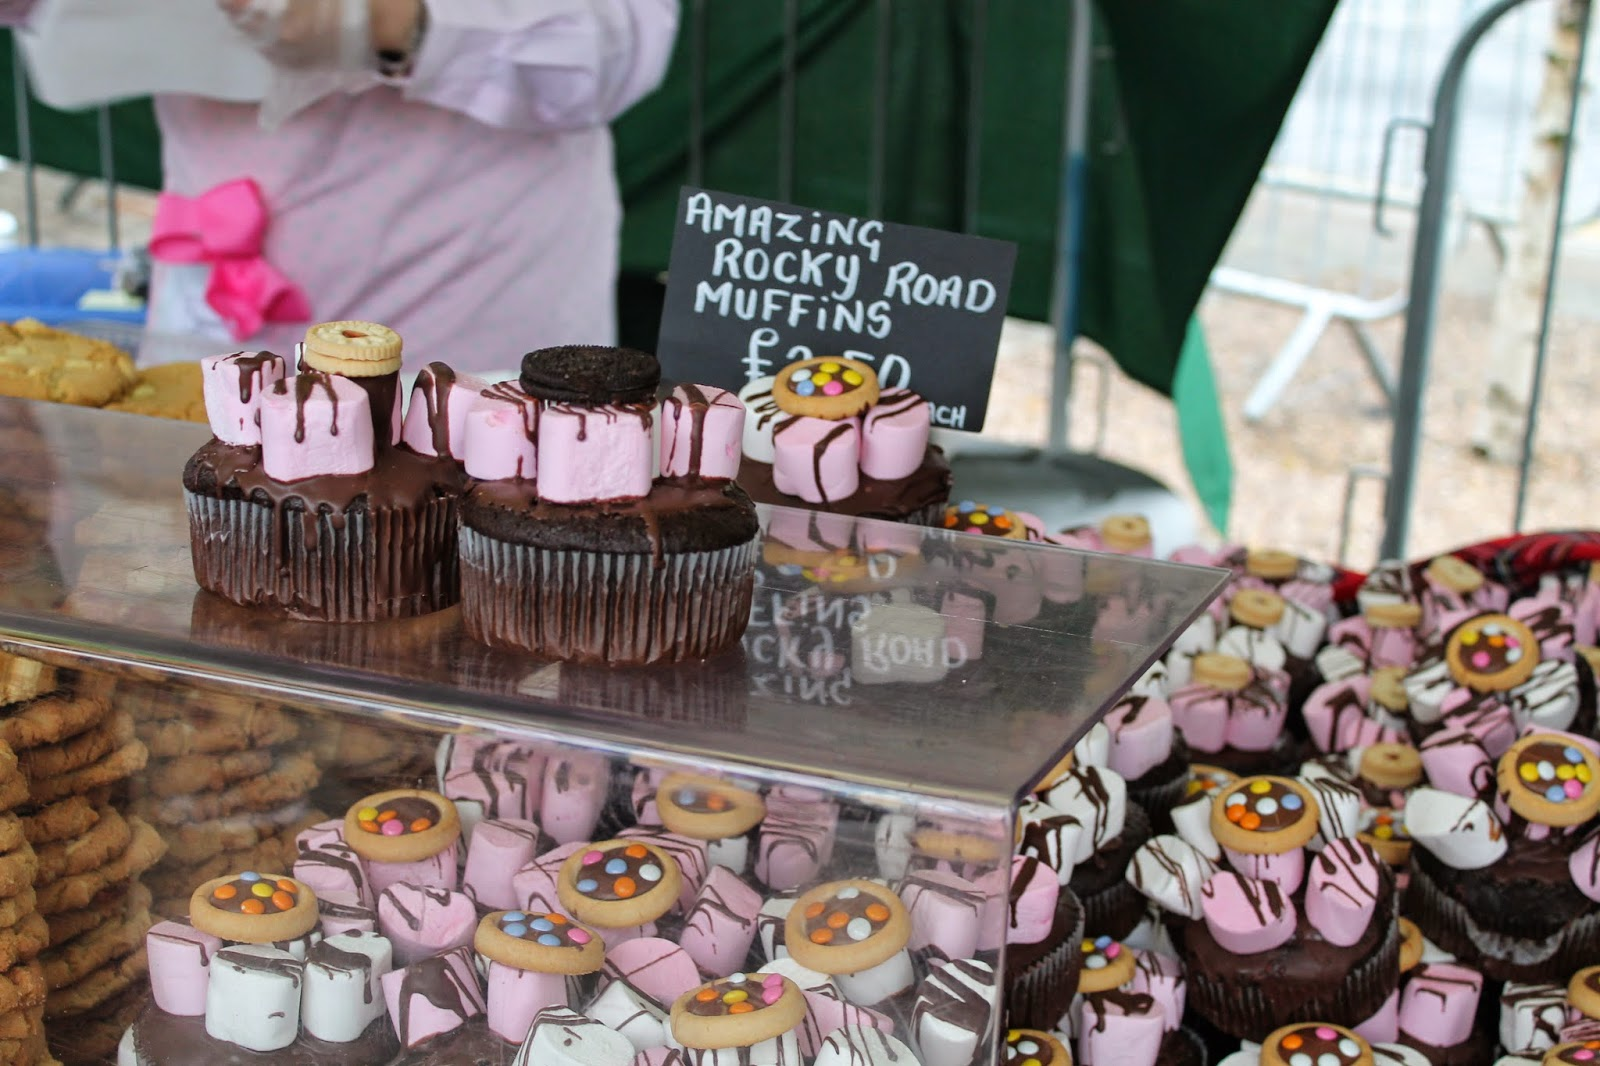 Bishop Auckland Food Festival 2014 - Rocky Road Chocolate Muffins